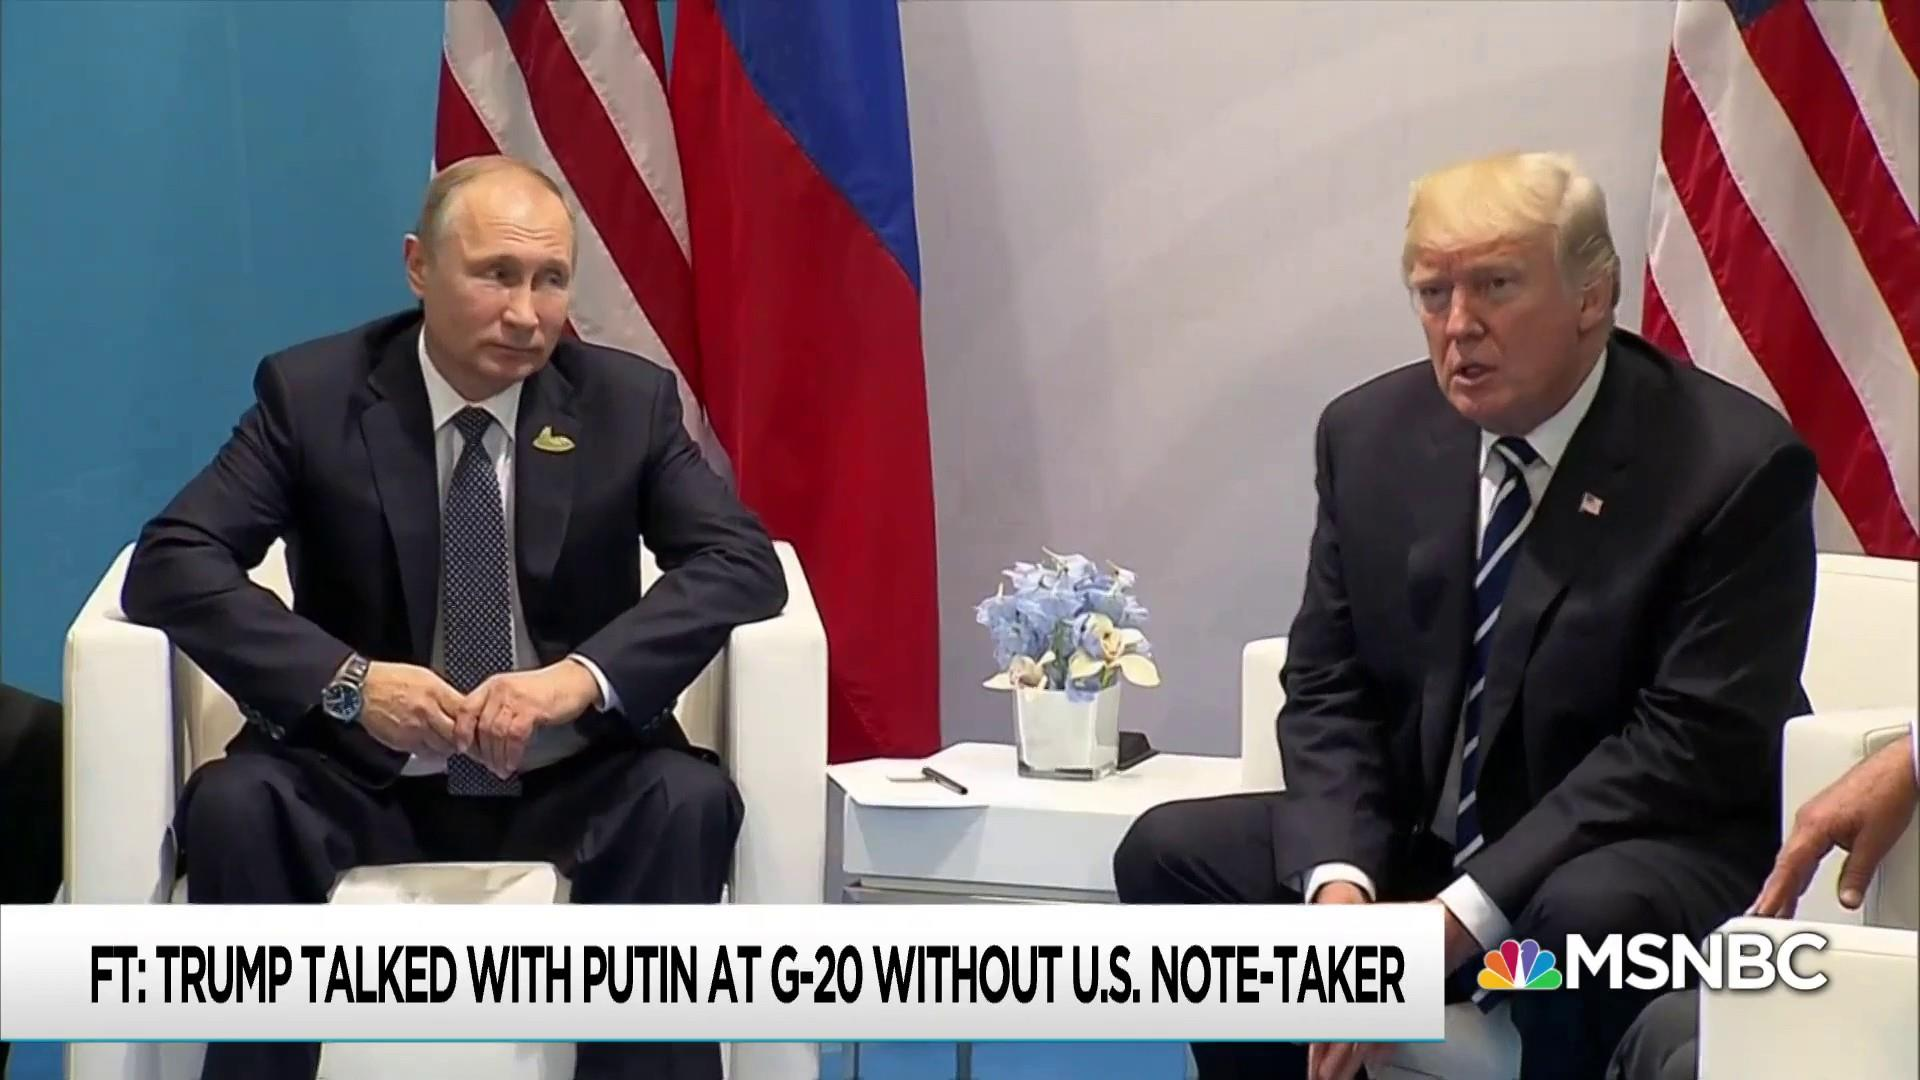 Trump had another 'off the books' meeting with Putin at G20: FT